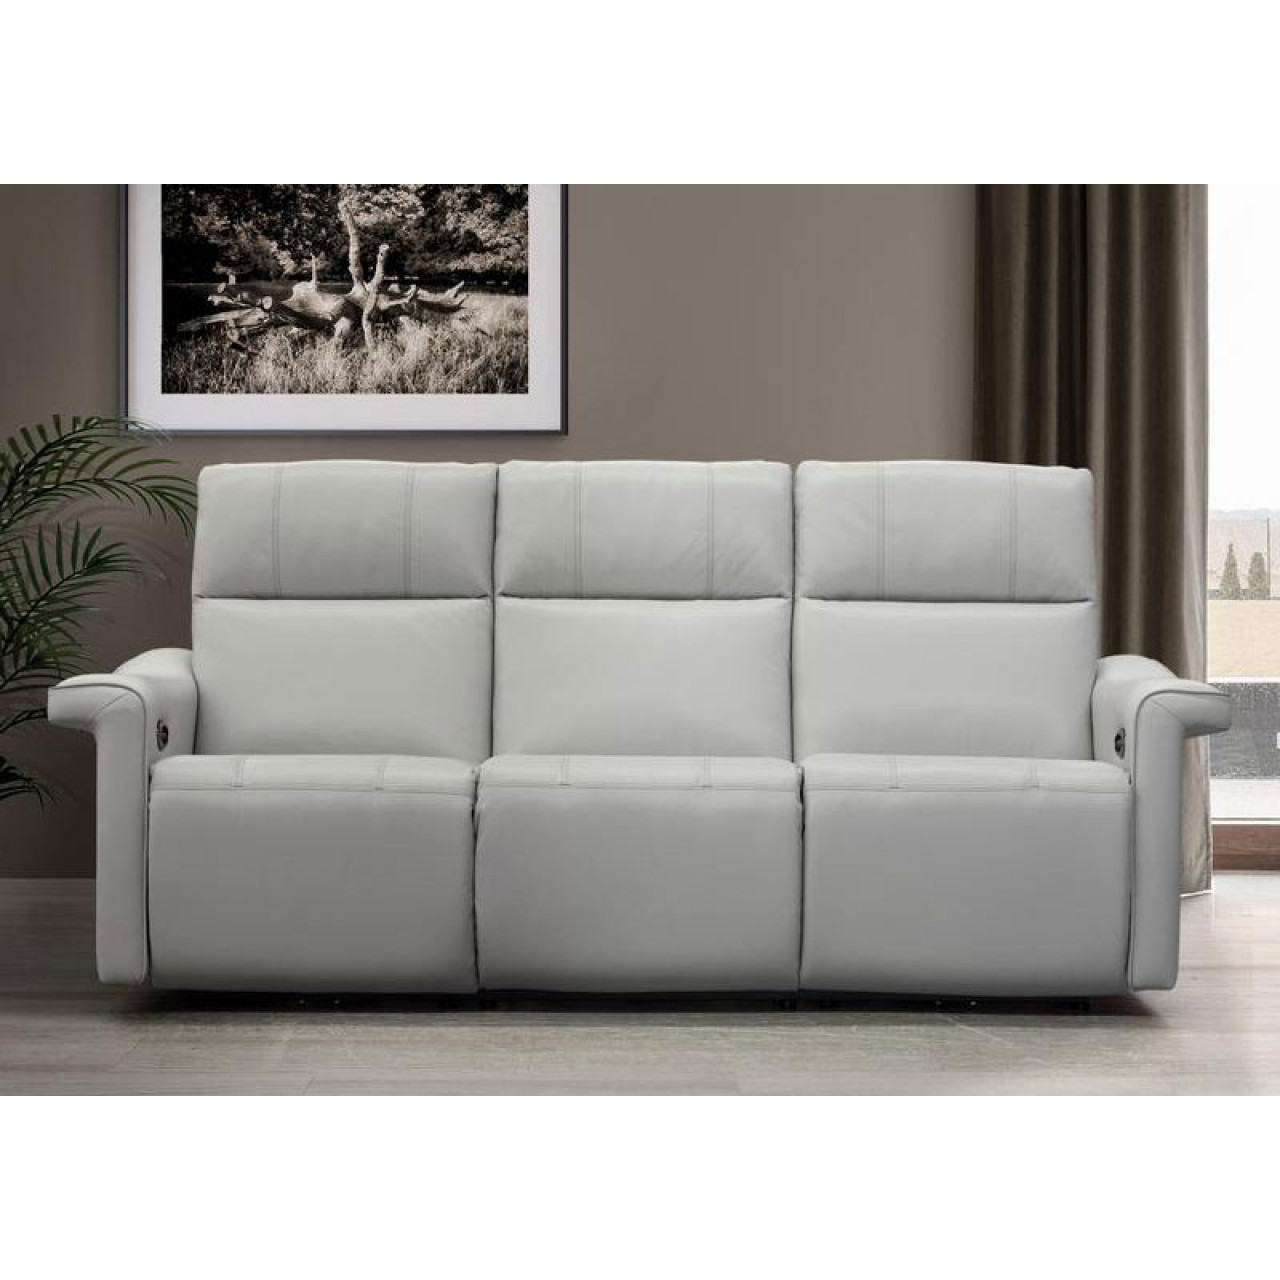 Elran Finn Sofa From $2,519.00 By Elran